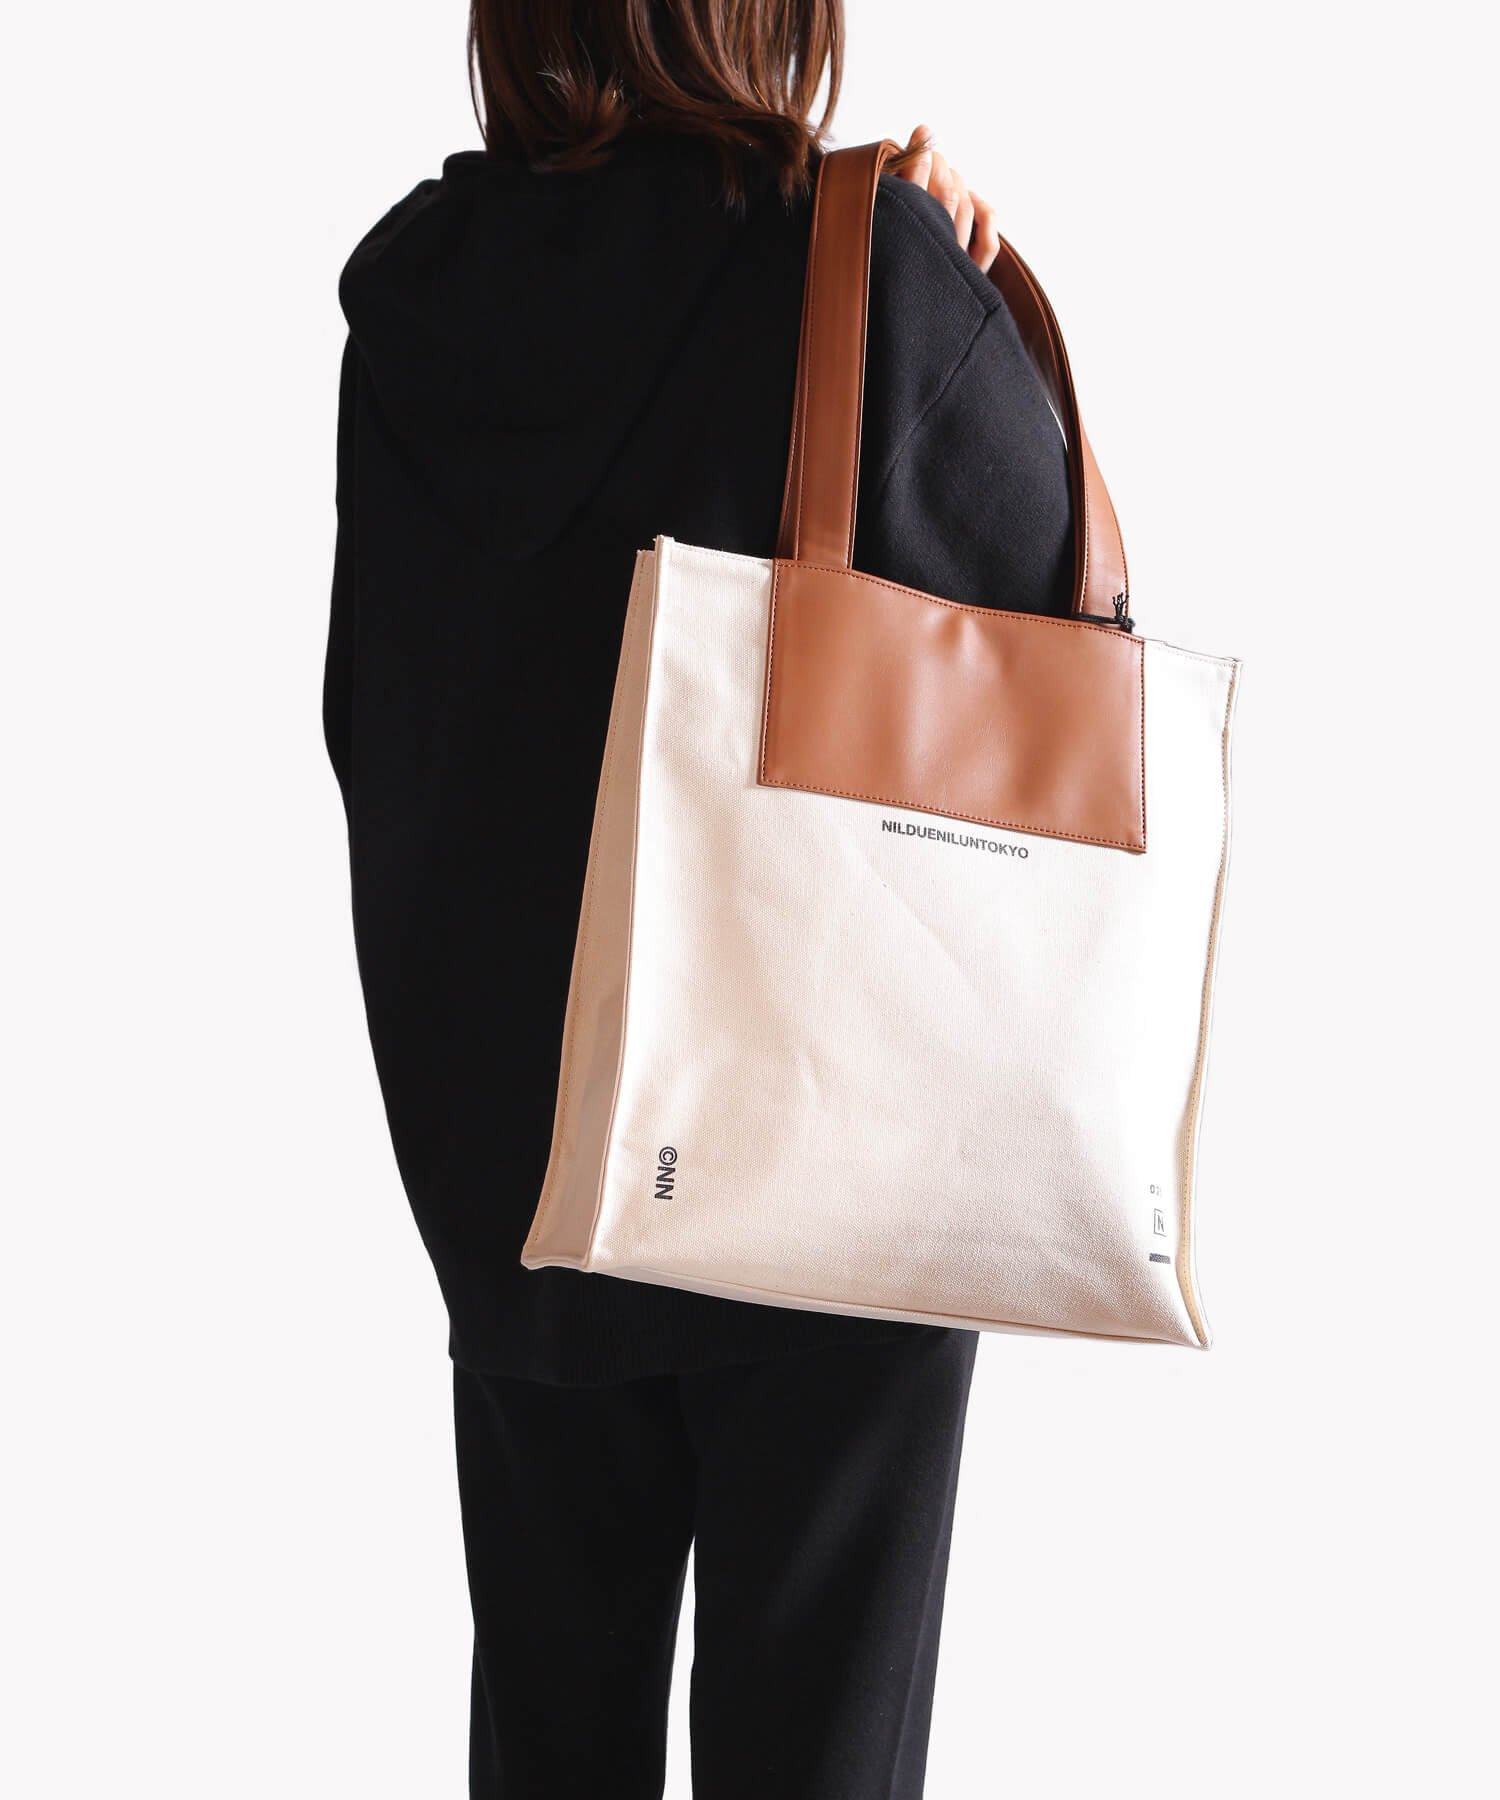 NIL DUE / NIL UN TOKYO / ニル デュエ / ニル アン トーキョー | CANVAS LEATHER TOTE (BROWN) 商品画像7